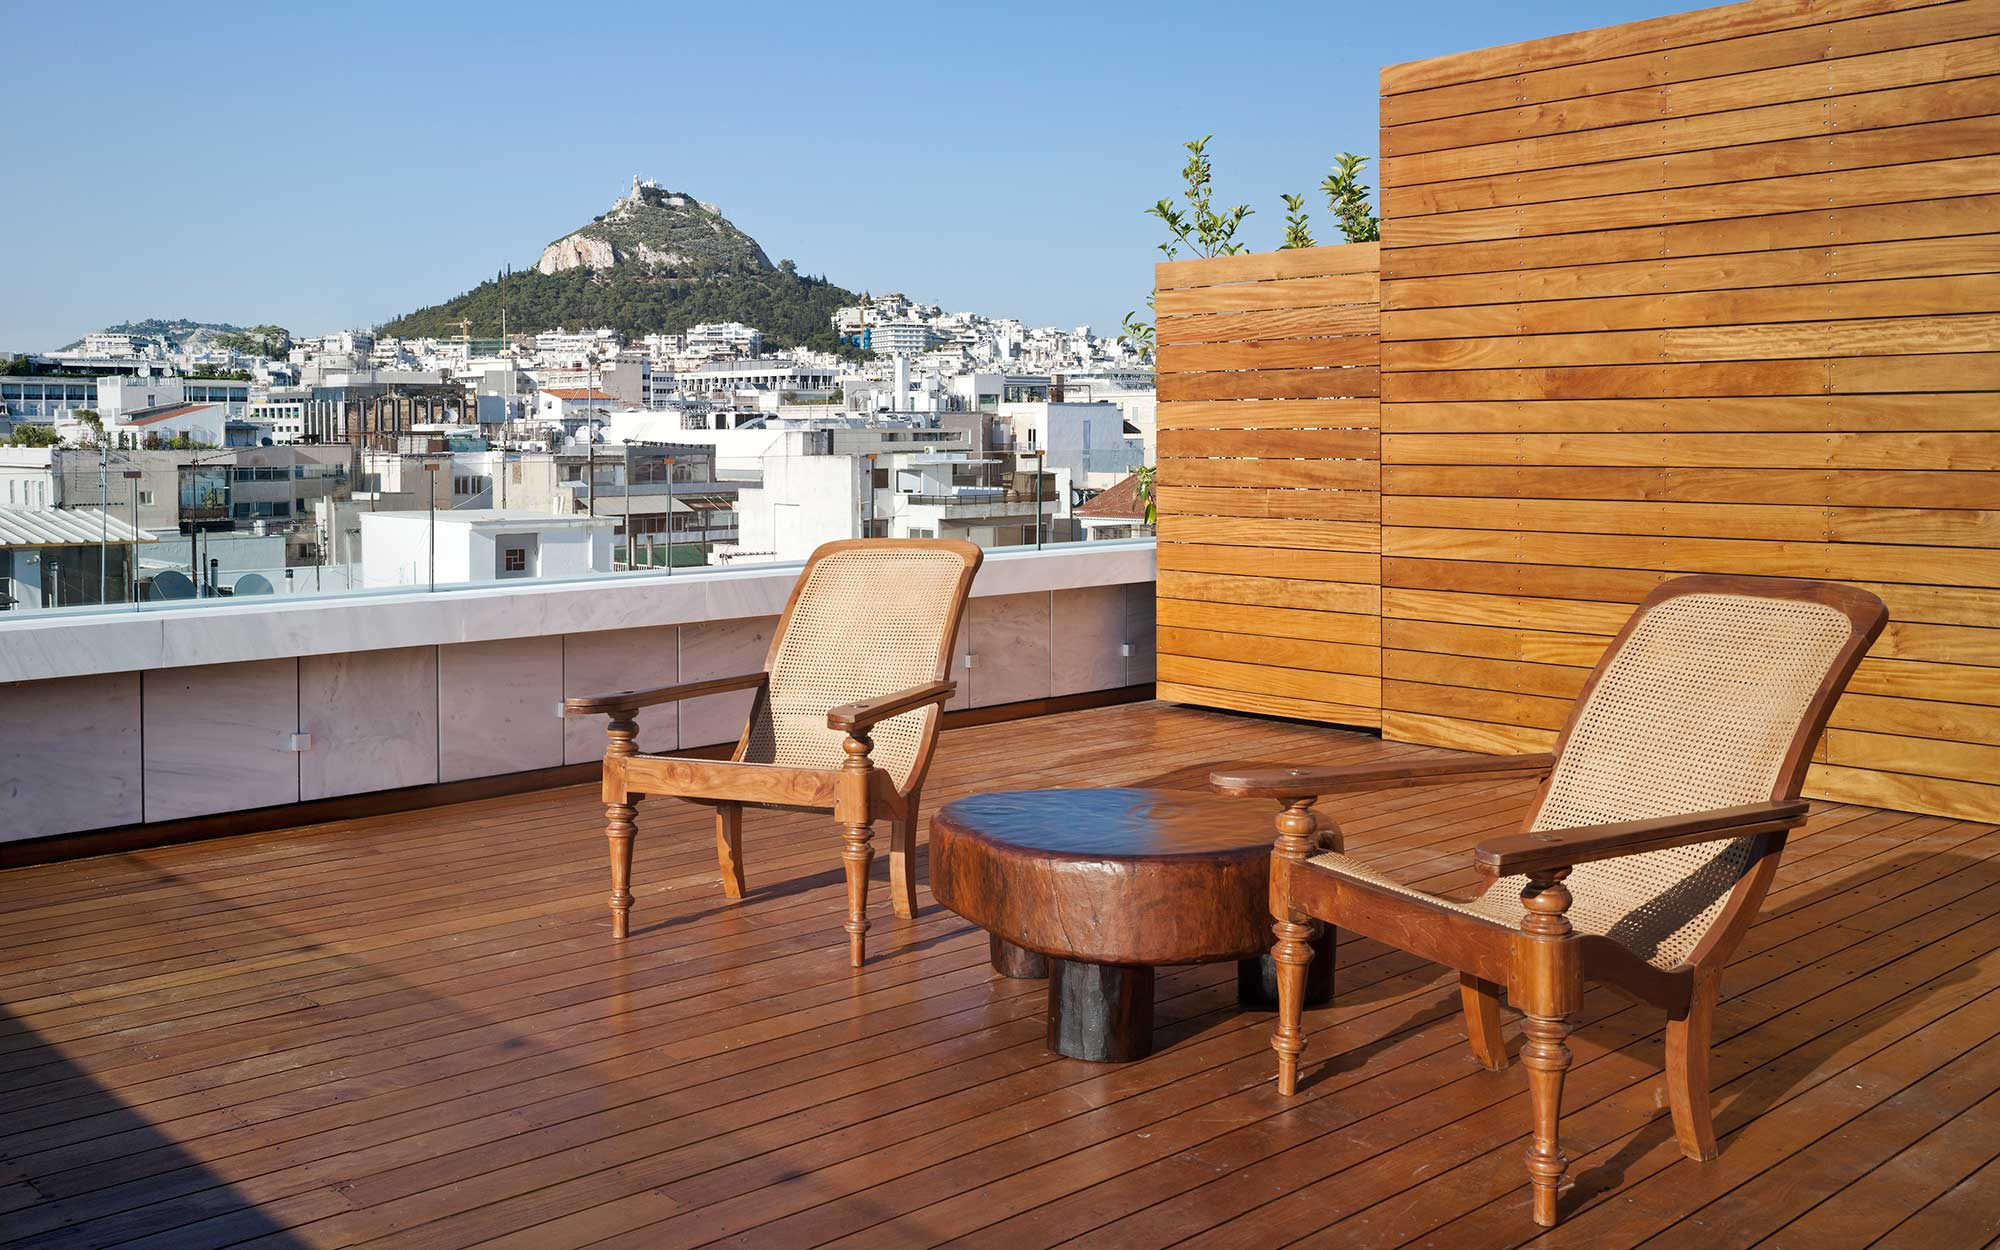 Best Romantic Summer Getaways: Athens